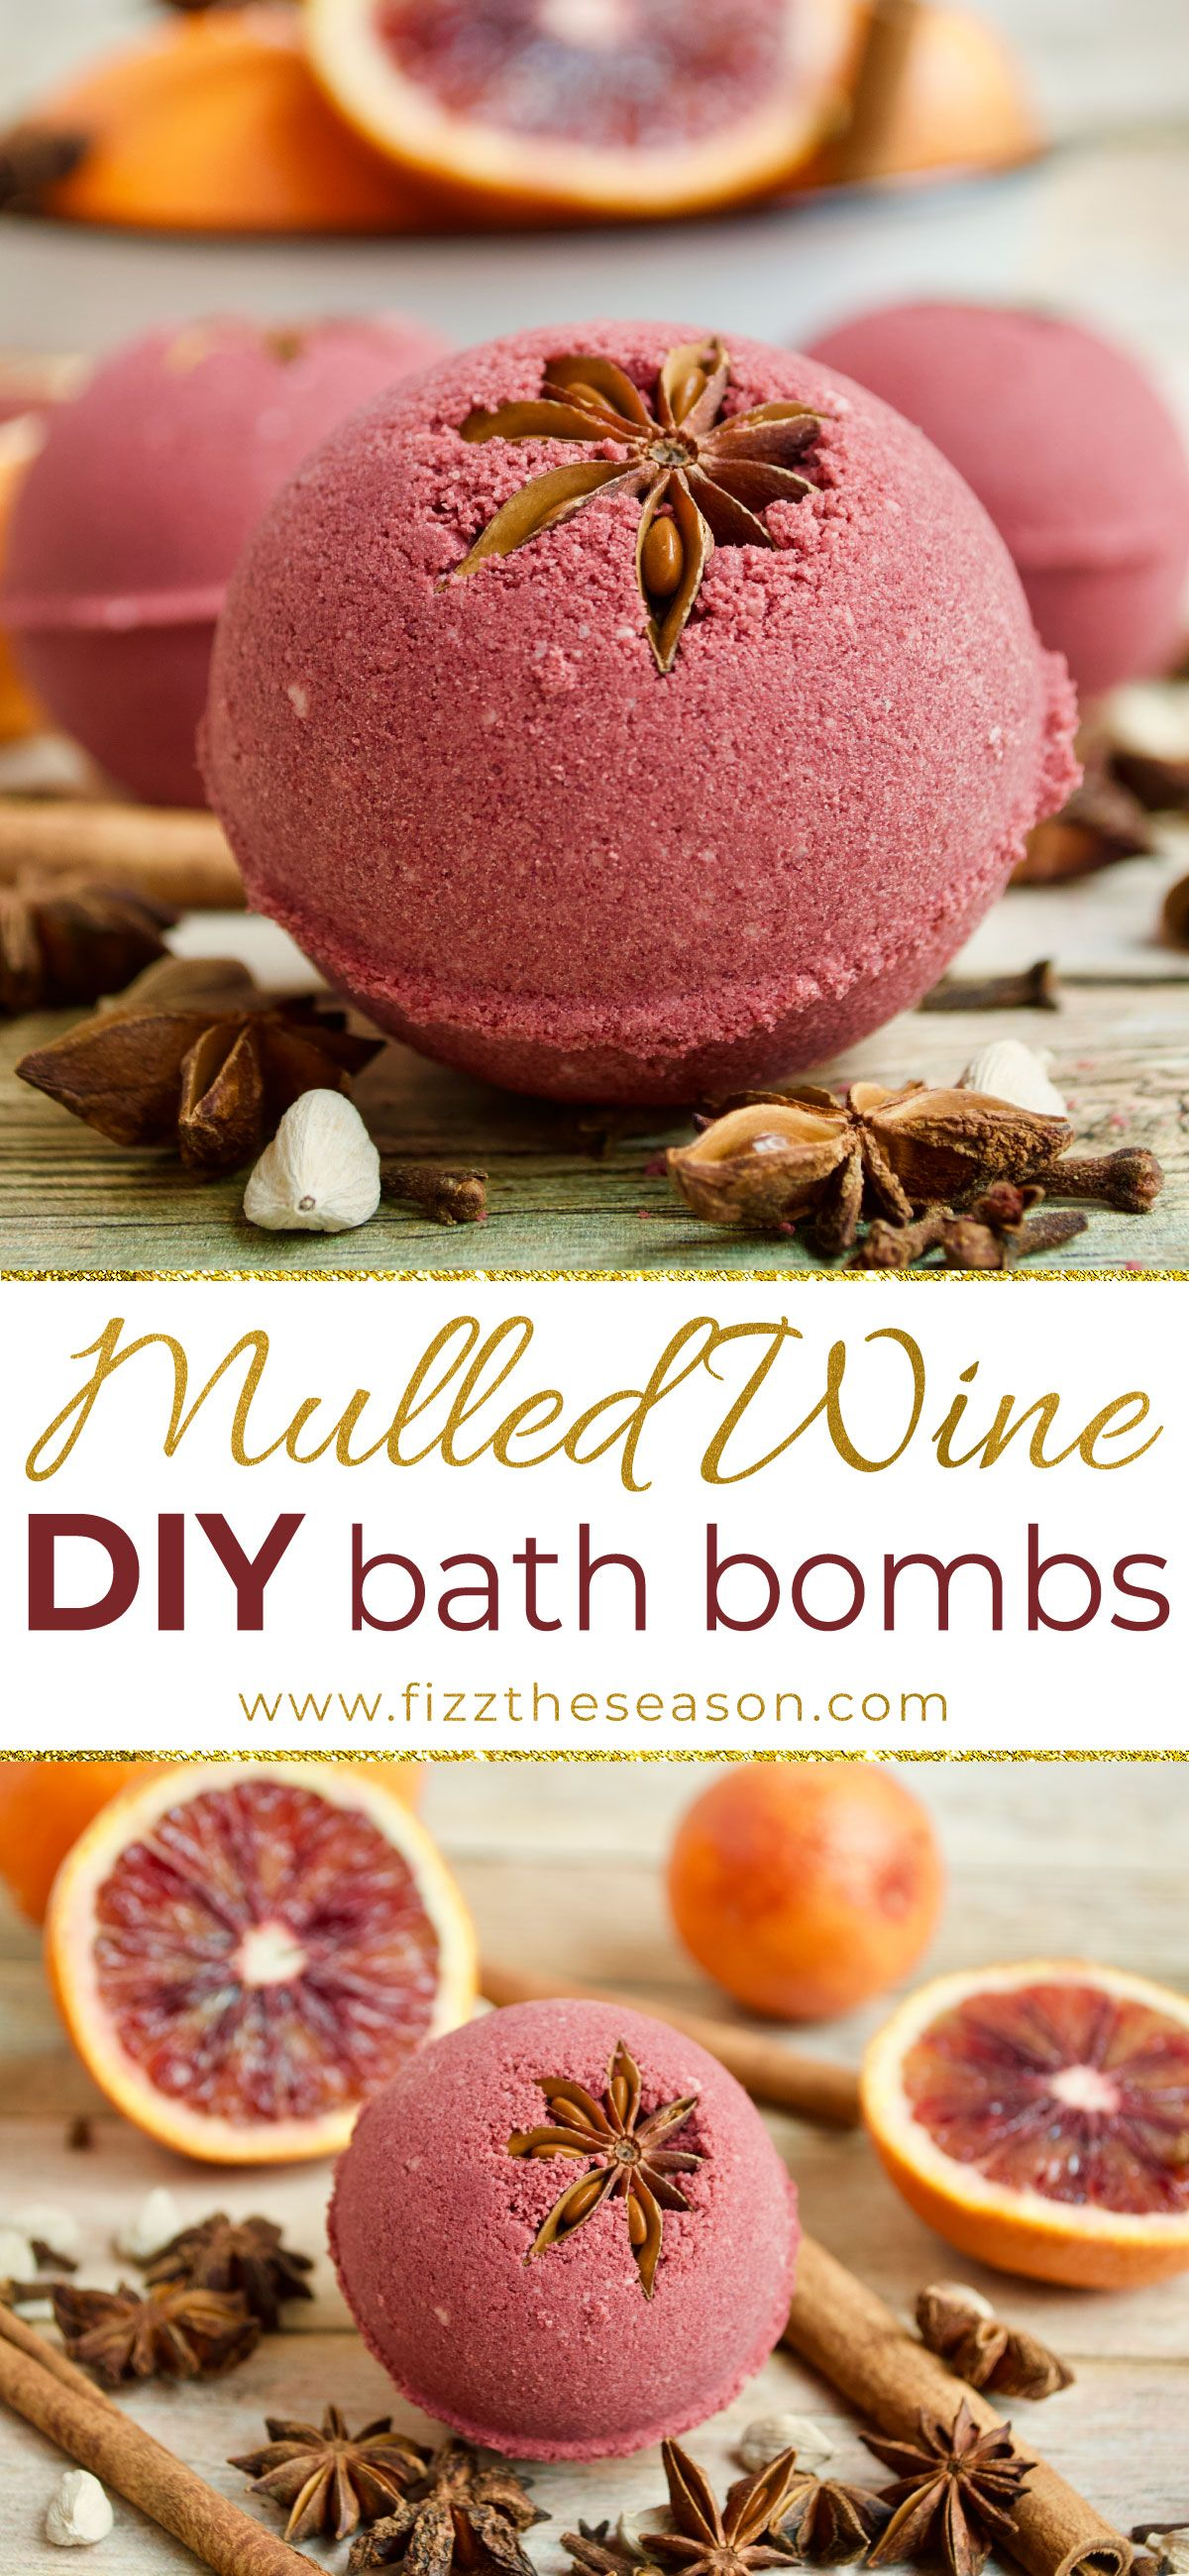 Diy Mulled Wine Bath Bombs Fizz The Season Recipe Bath Bomb Recipes Diy Bath Products Homemade Bath Products